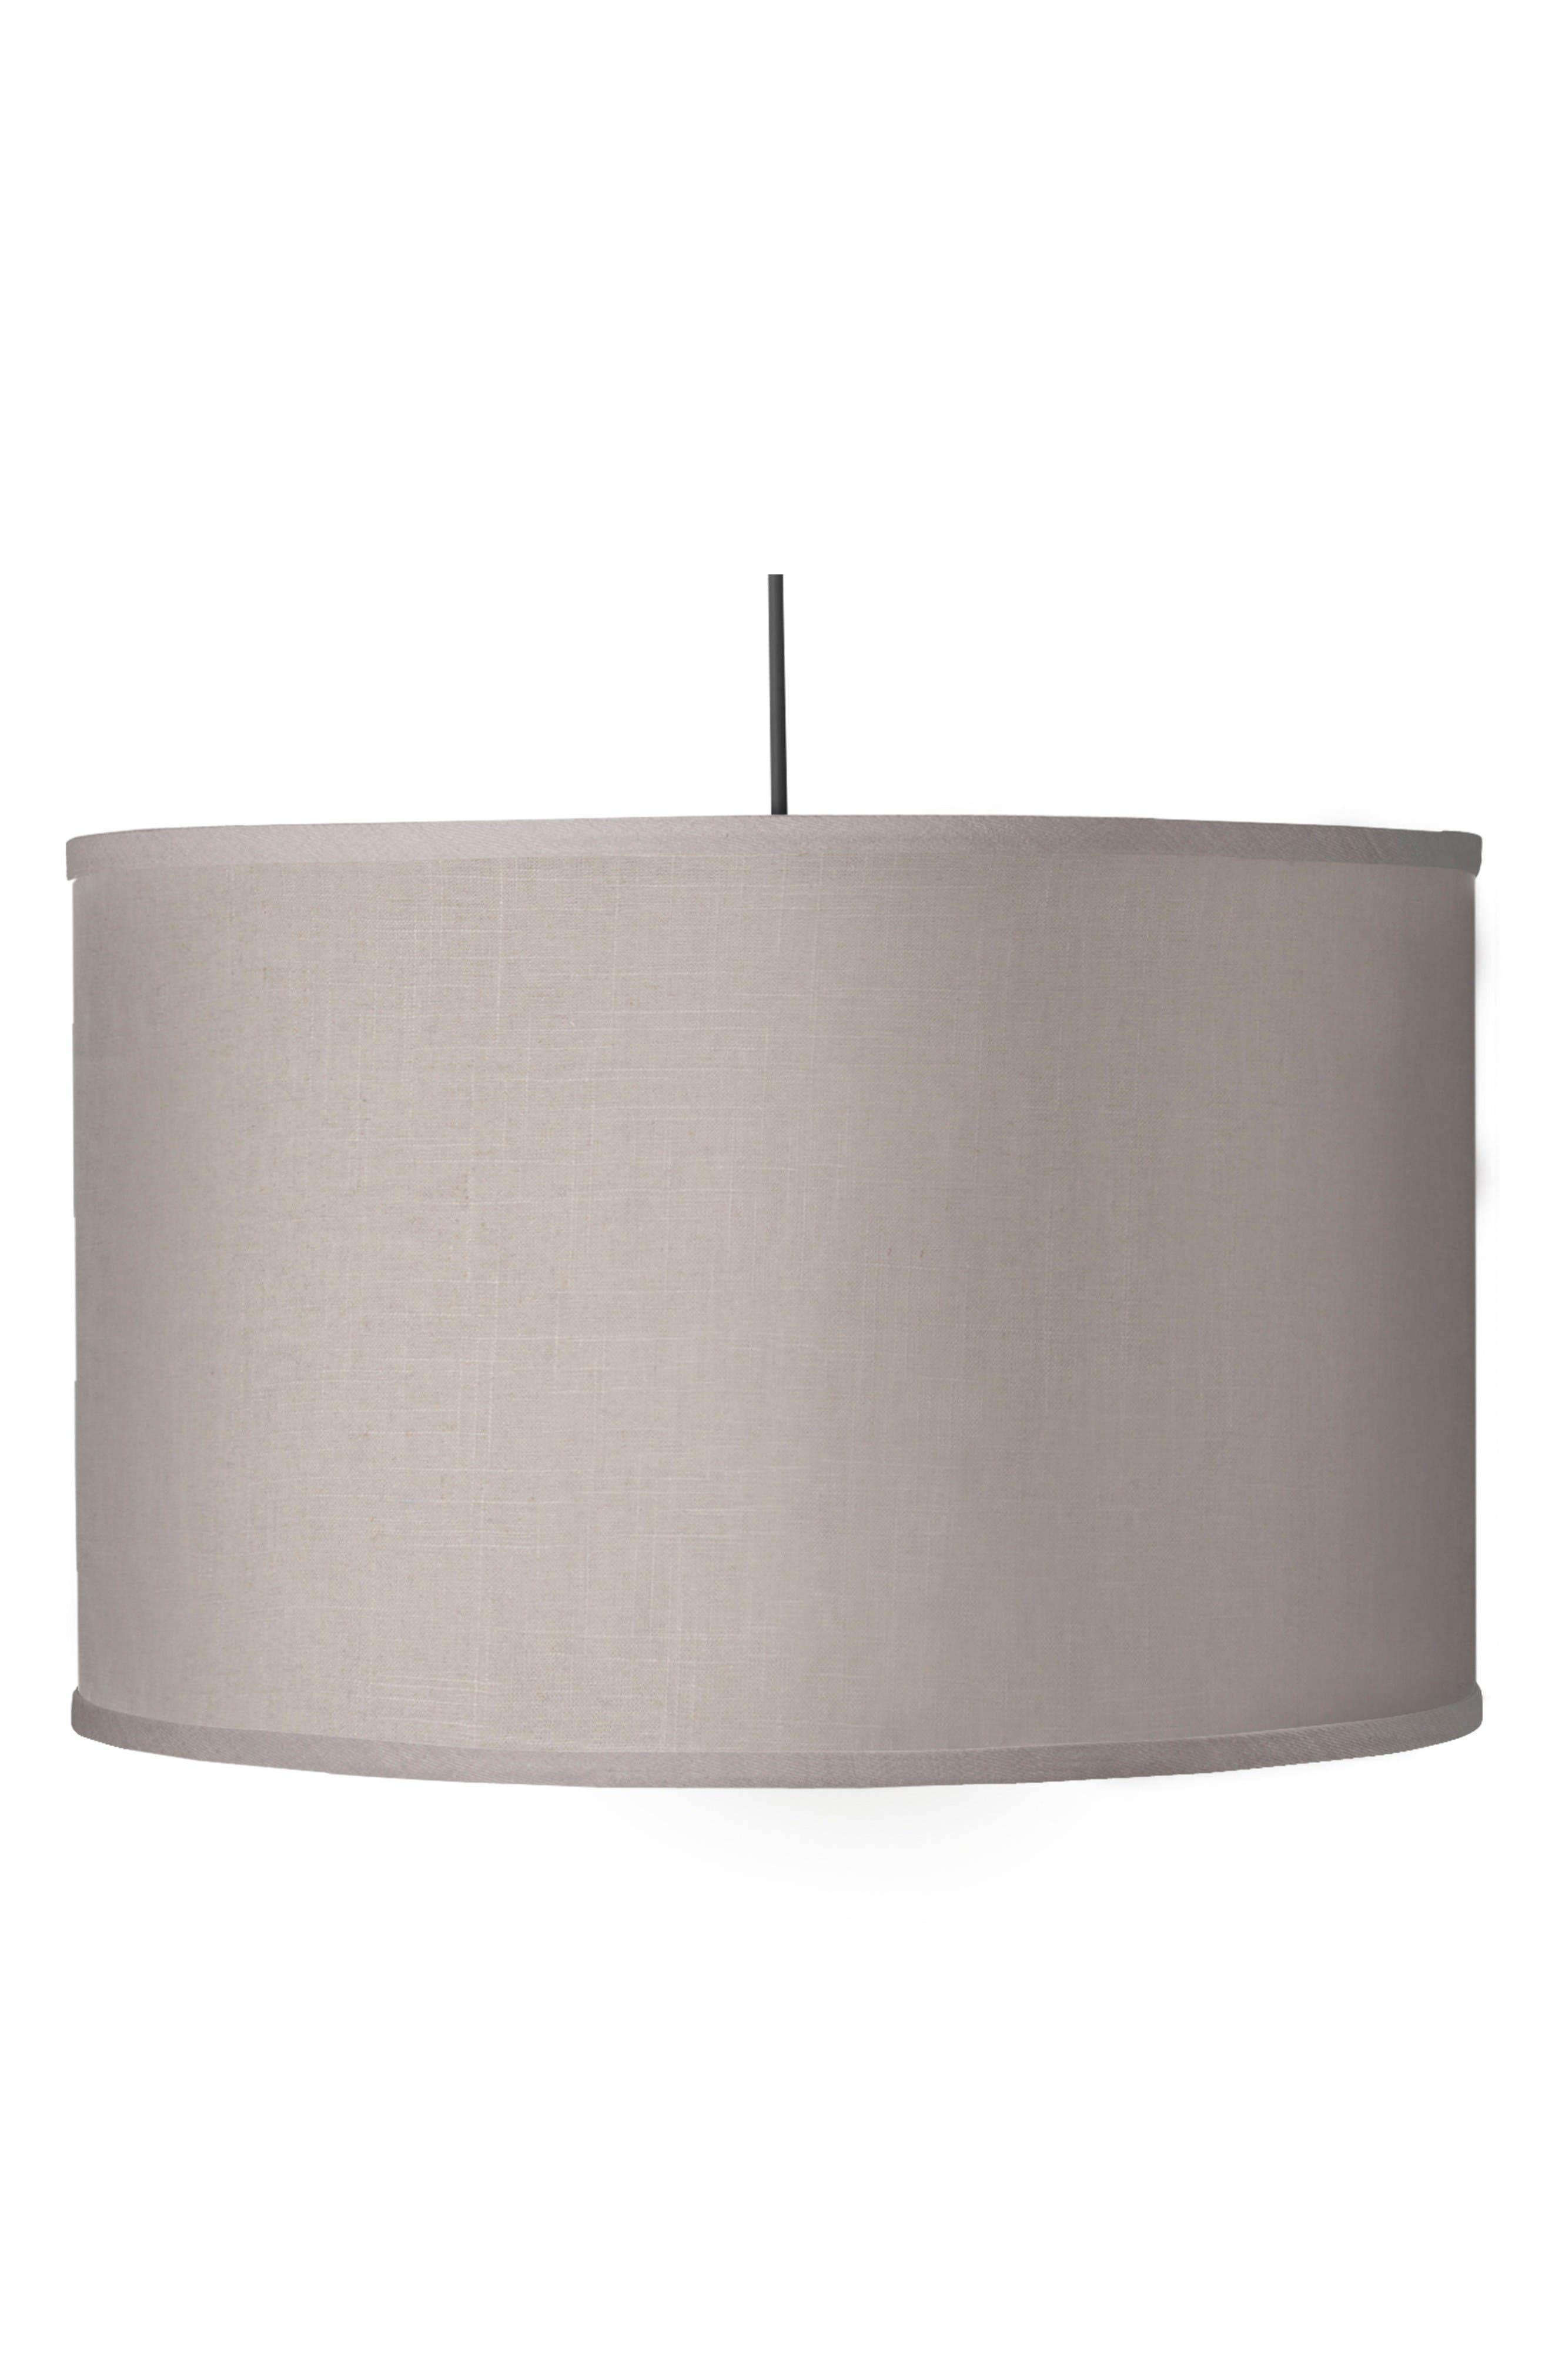 Oilo Large Cylinder Light